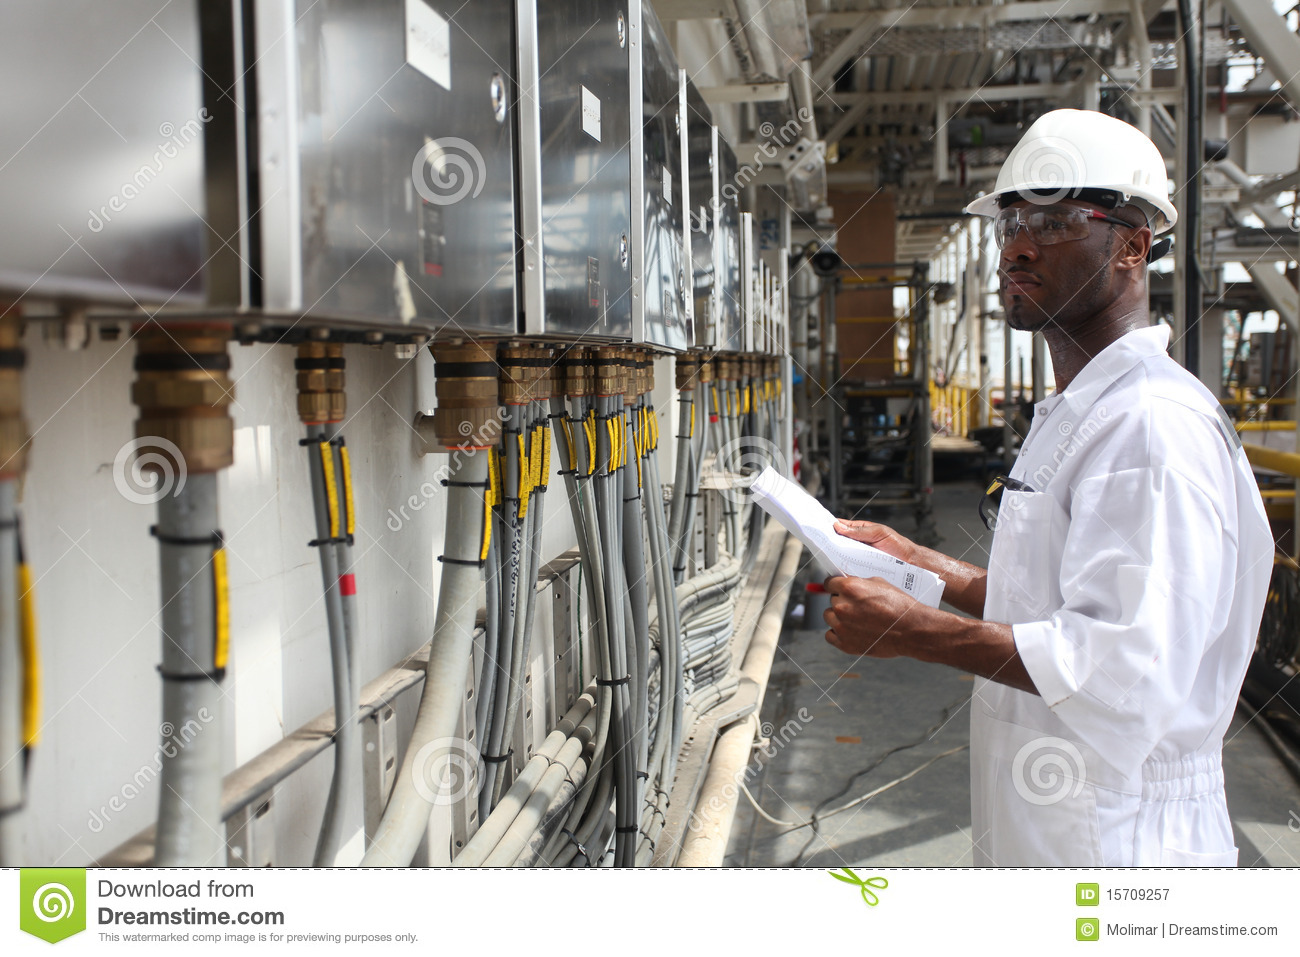 Oil & Gas Electrical Engineer Stock Image - Image: 15709257